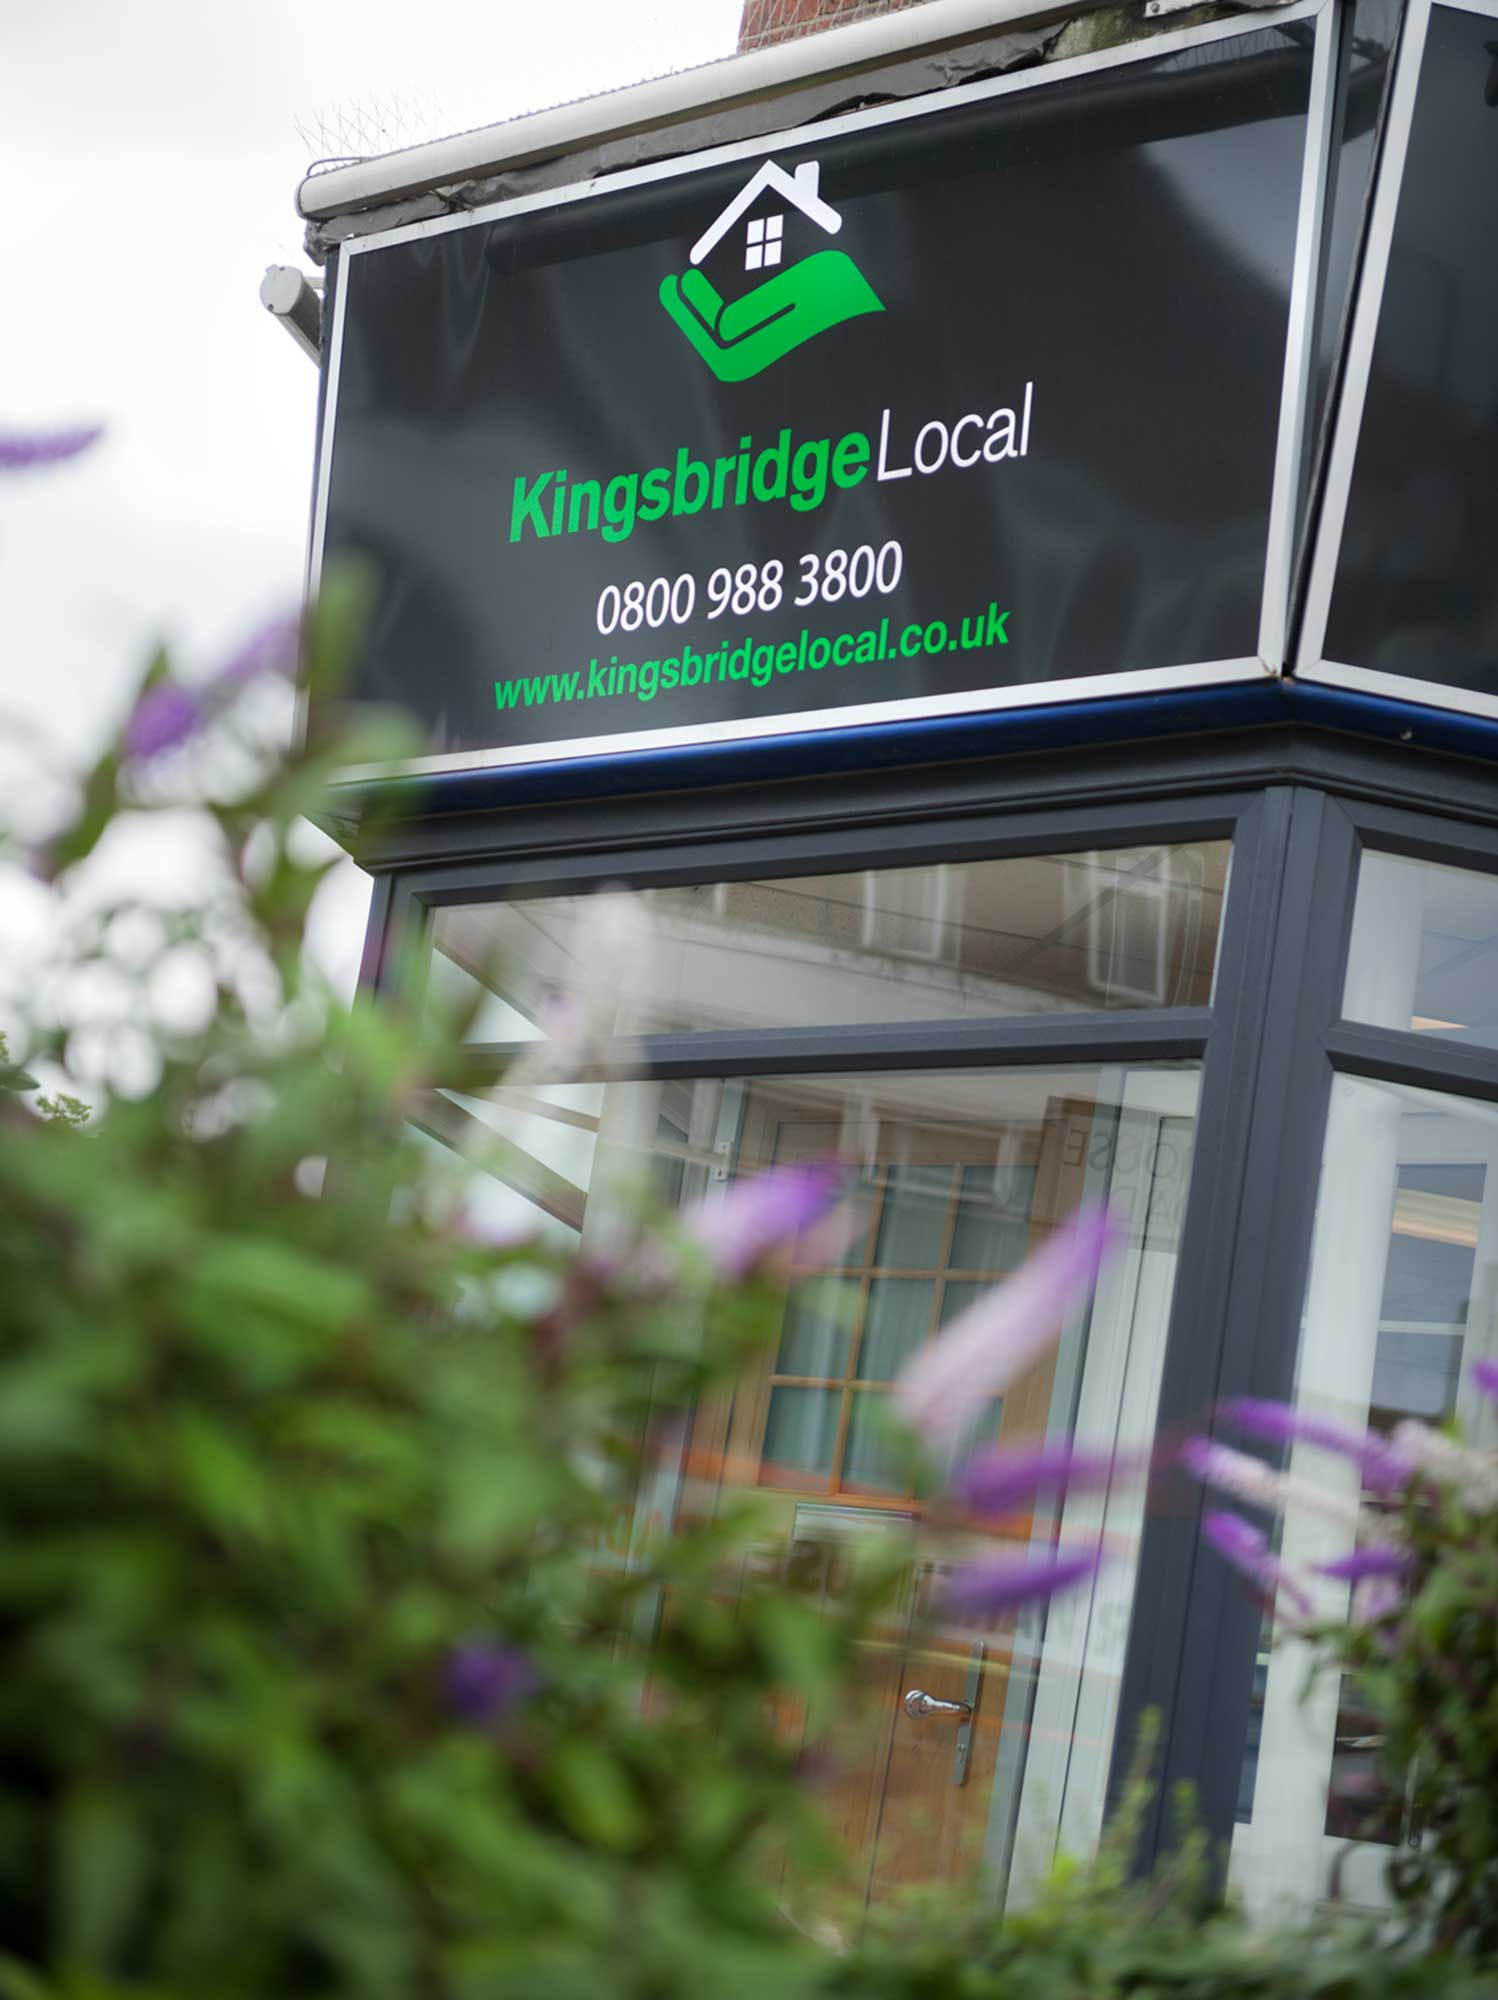 kingsbridge local office